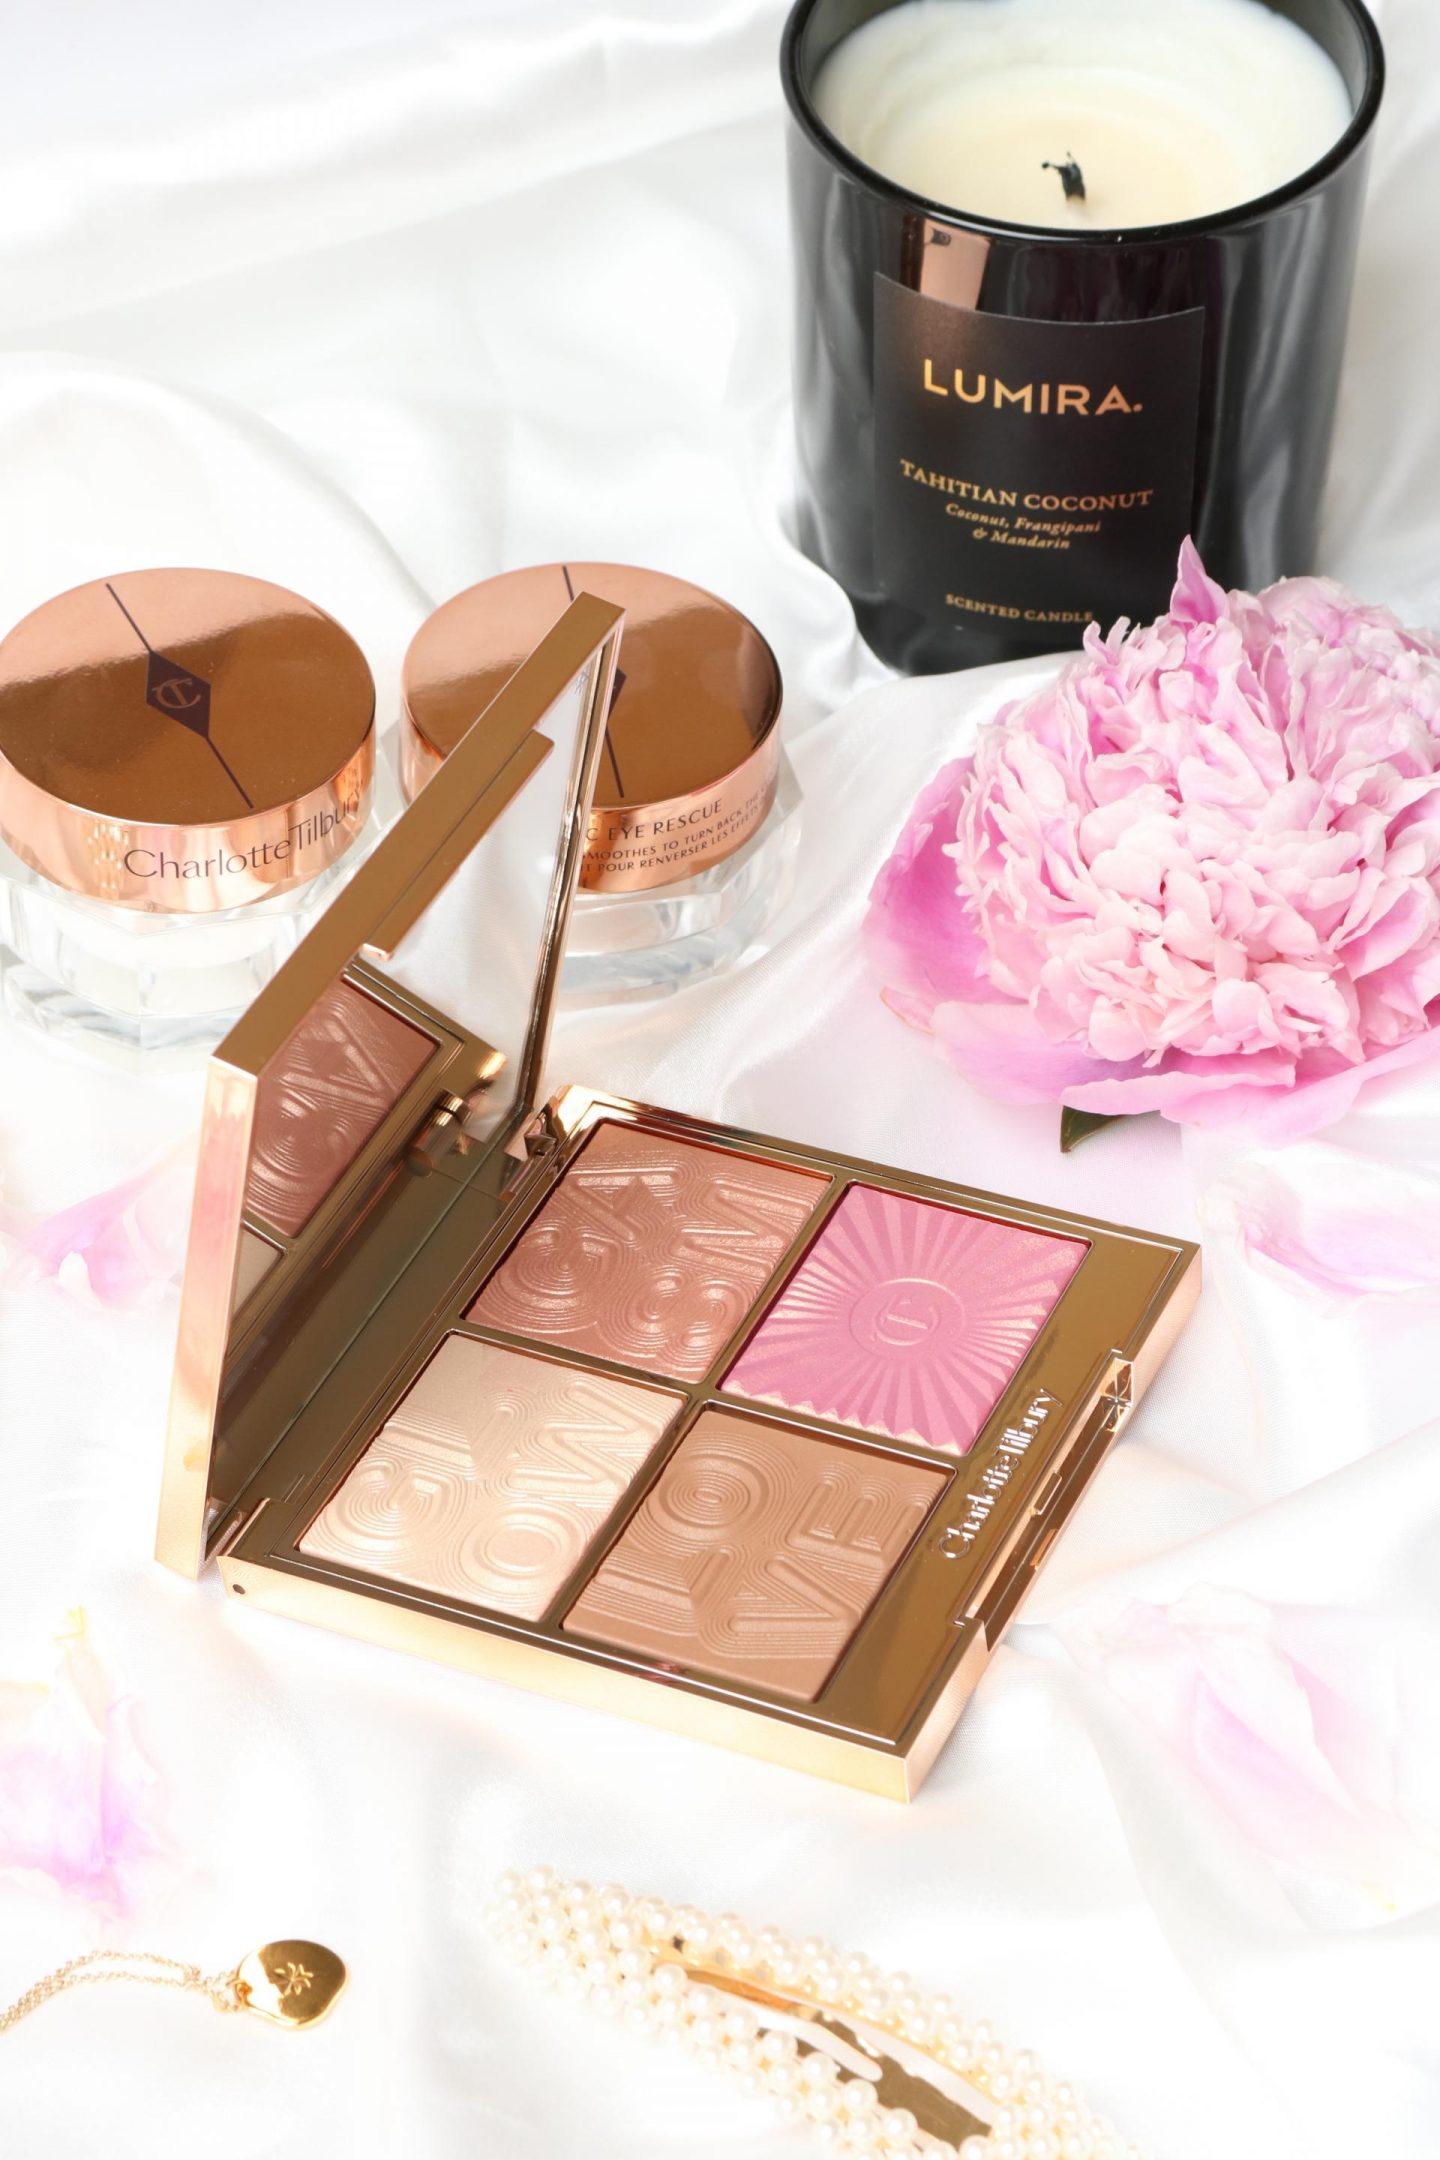 palette presented with powders shown